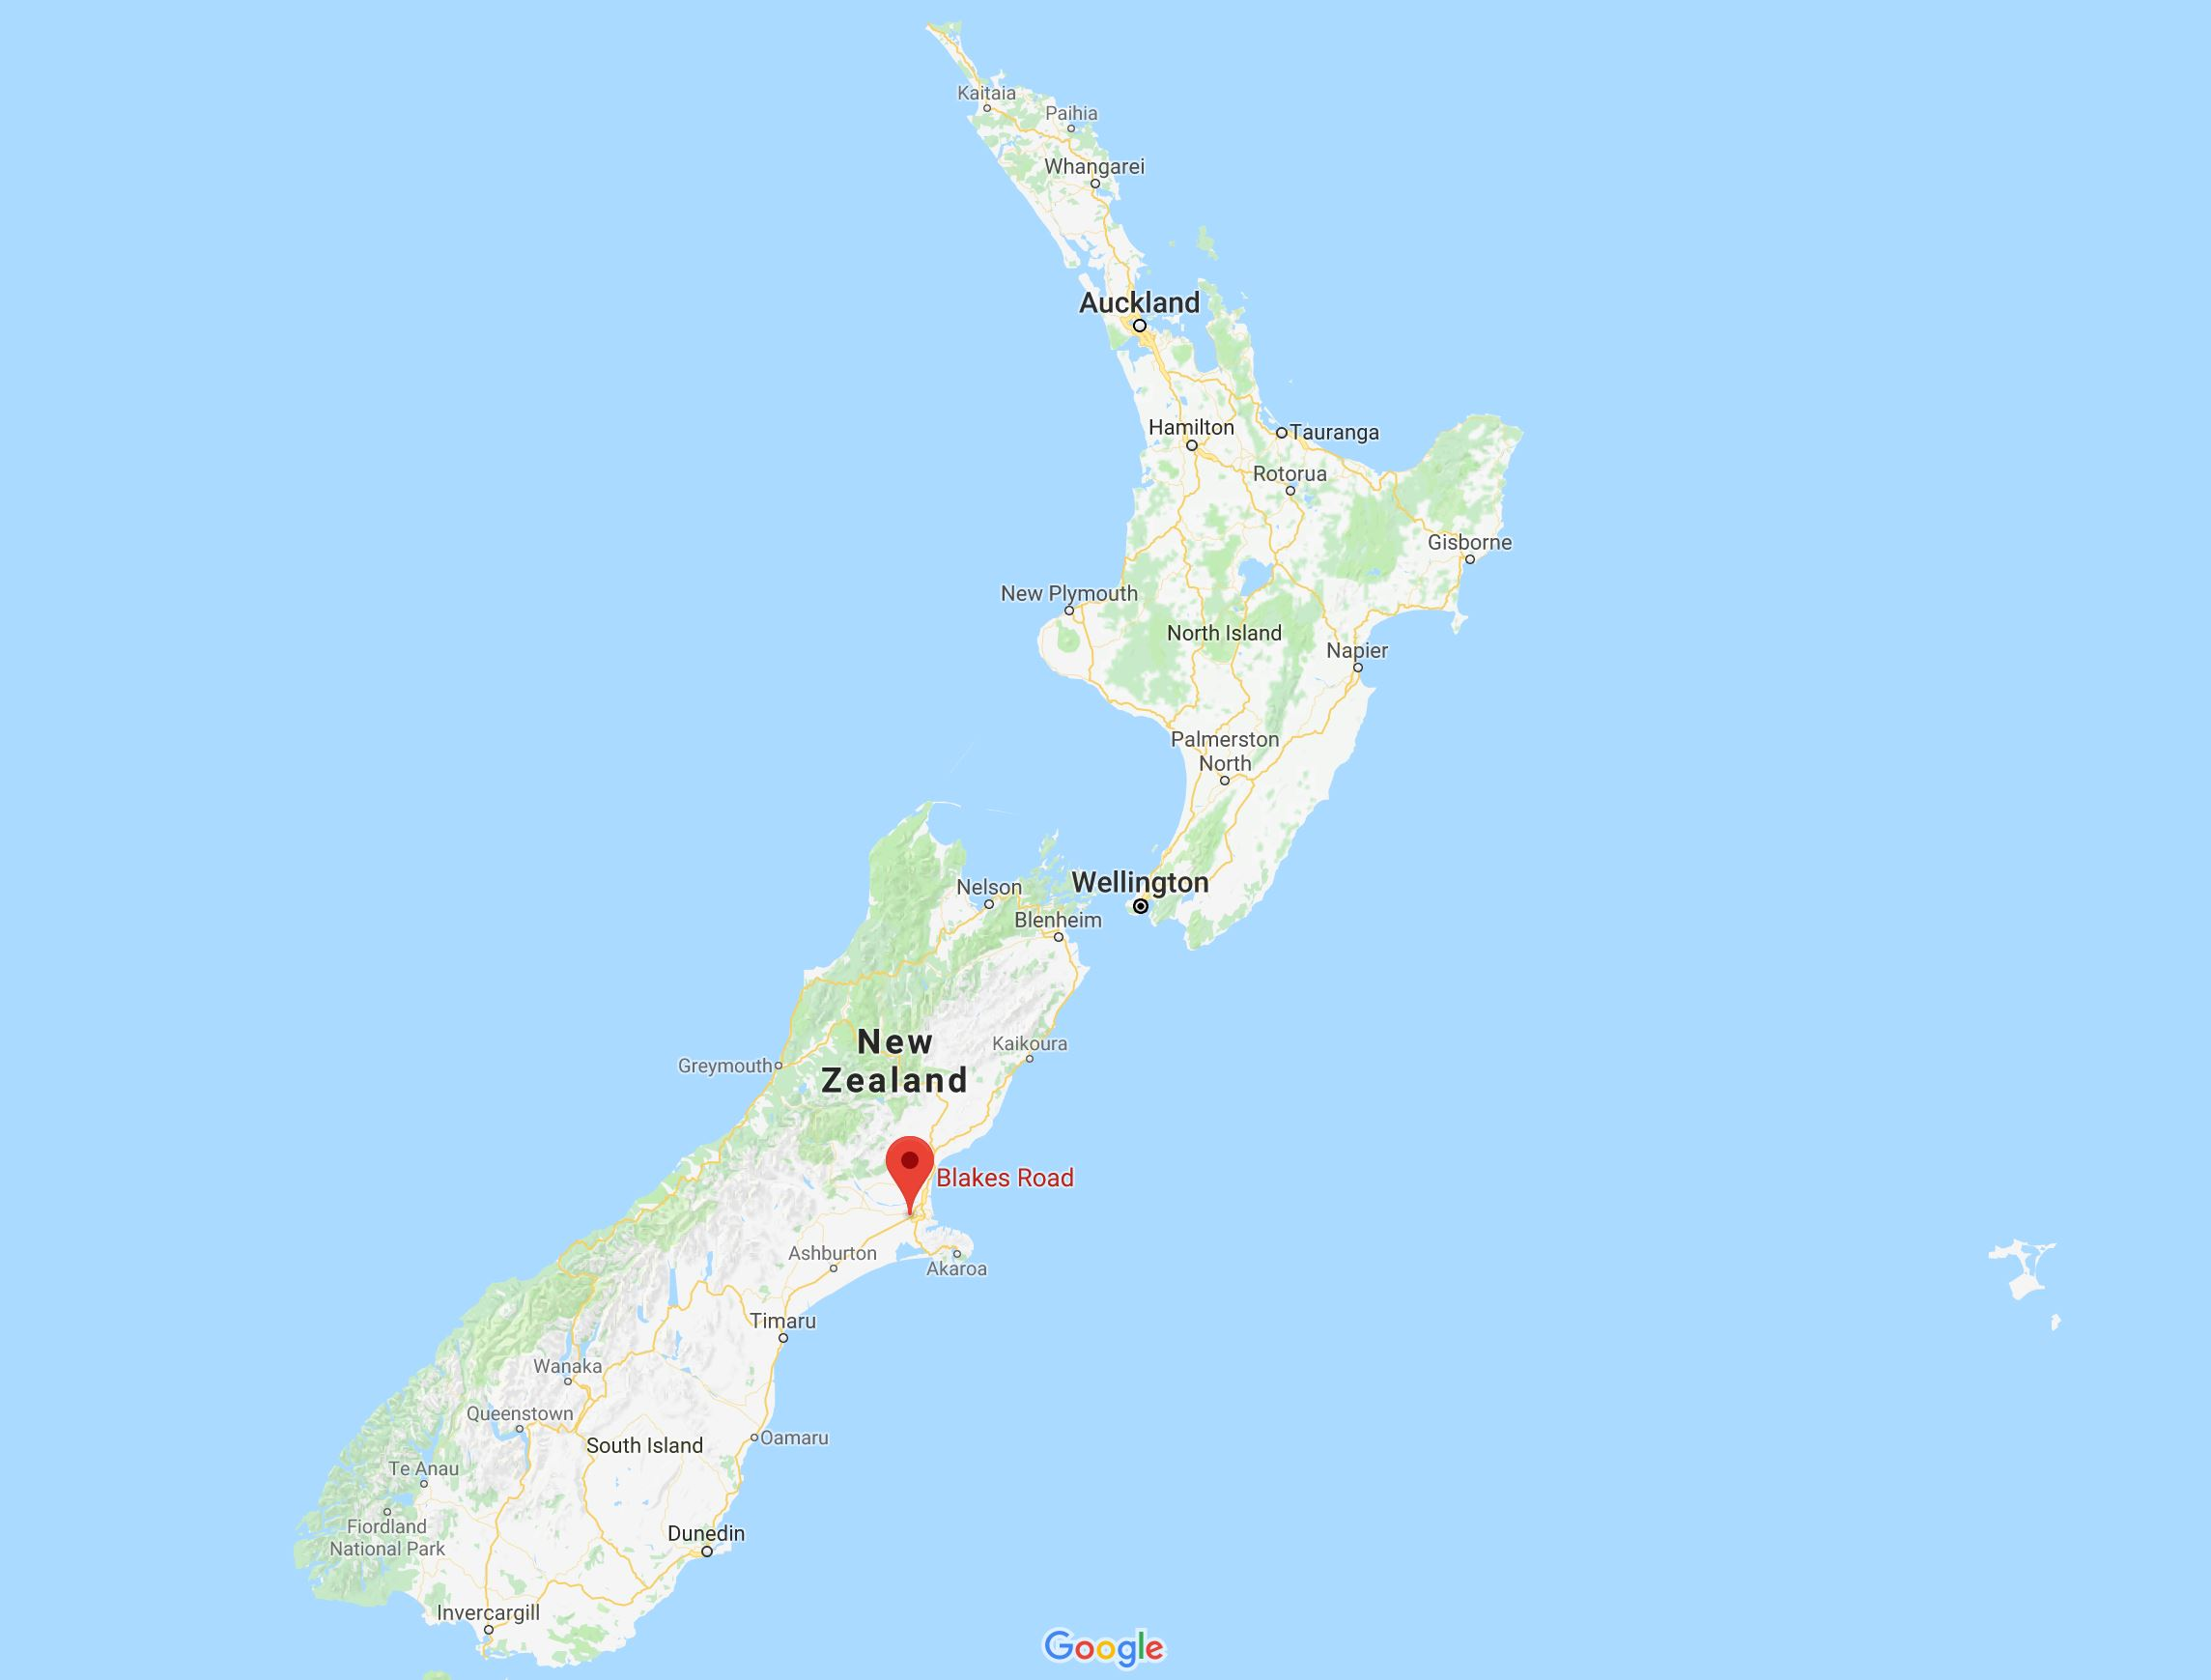 The location of the incident (Google Maps)